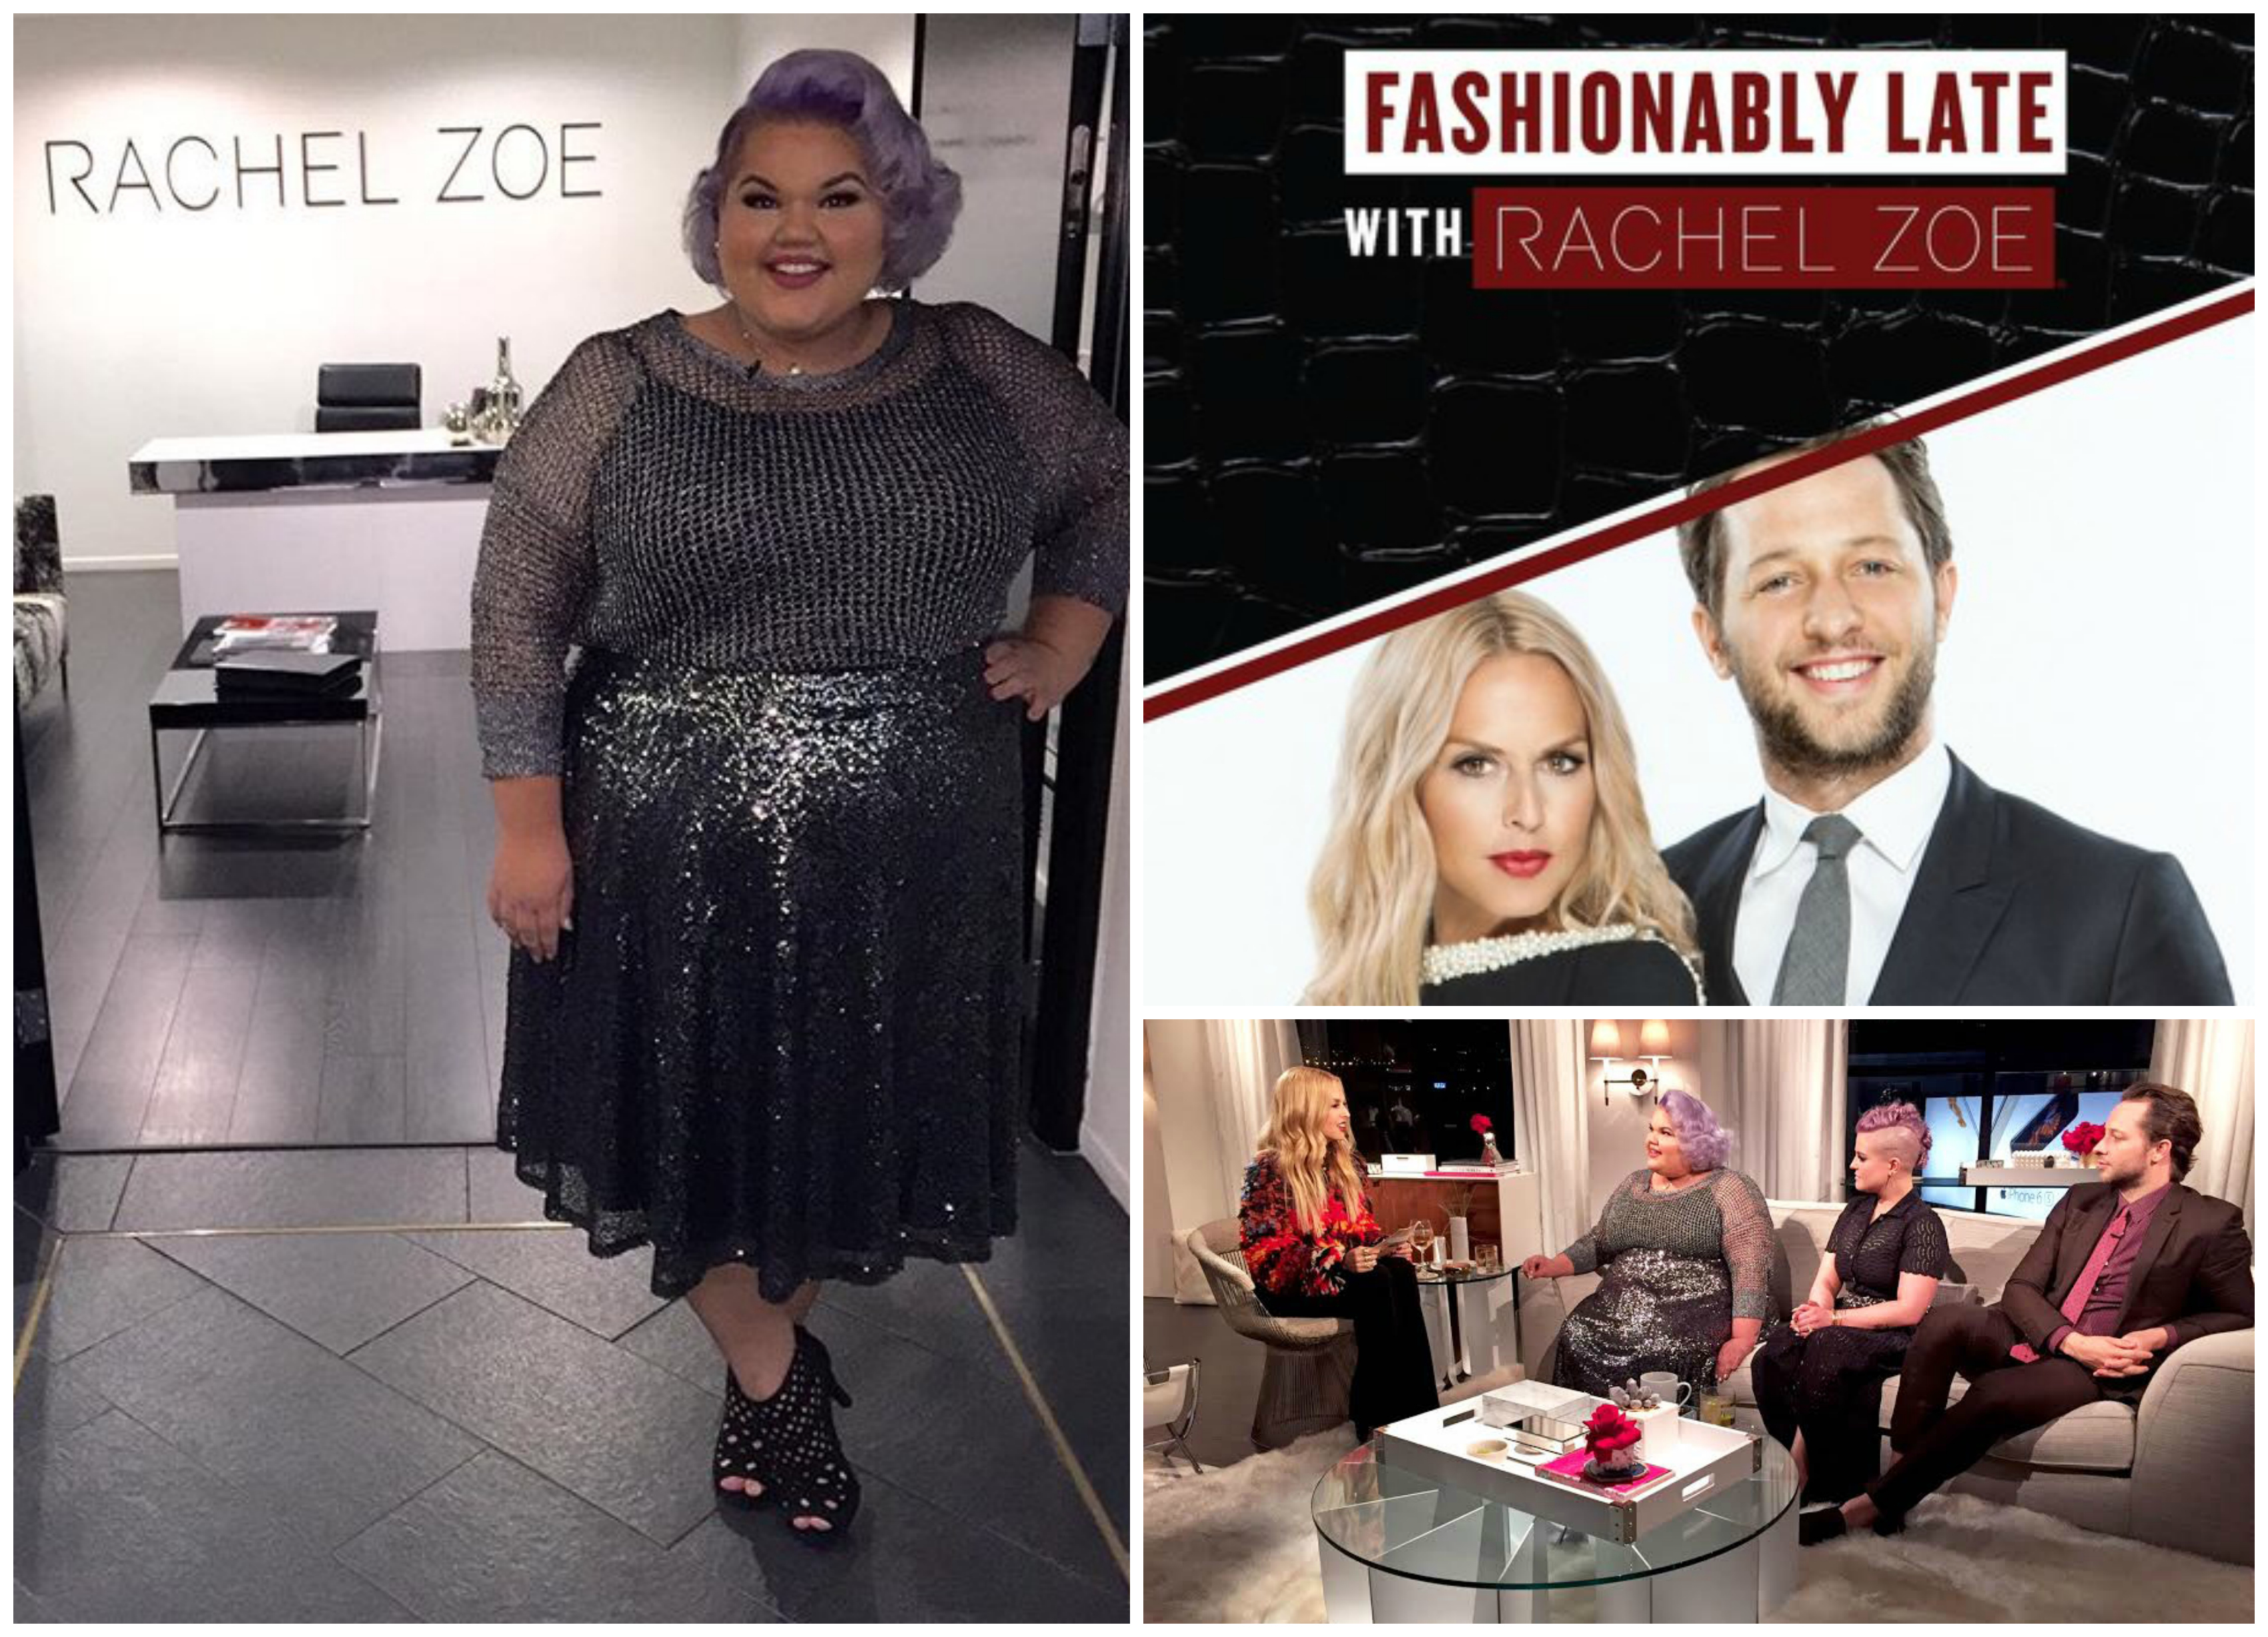 Ashley Nell Tipton / Fashionably Late with Rachel Zoe